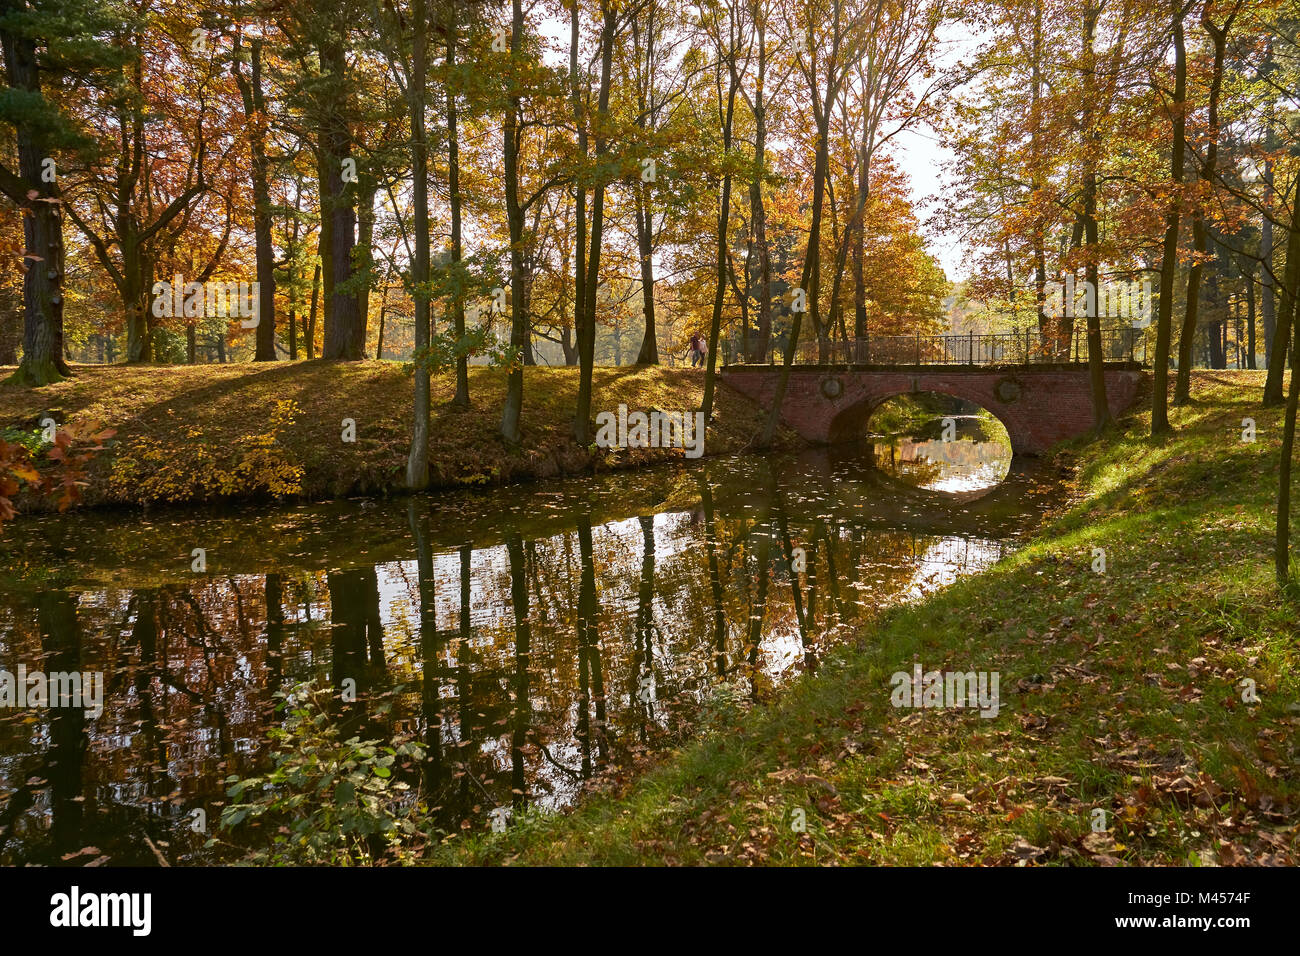 Autumn landscape - a park in golden colors, a waterway with a picturesque bridge over the glistening mirror of the - Stock Image